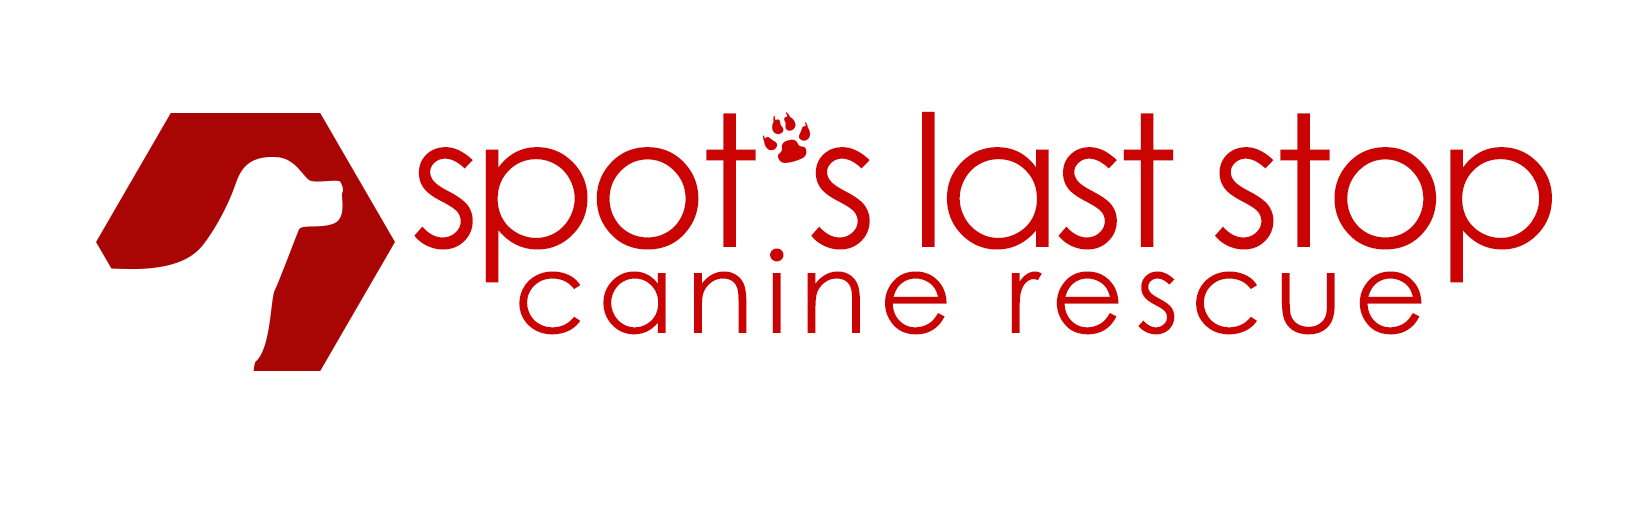 Spot's Last Stop Canine Rescue